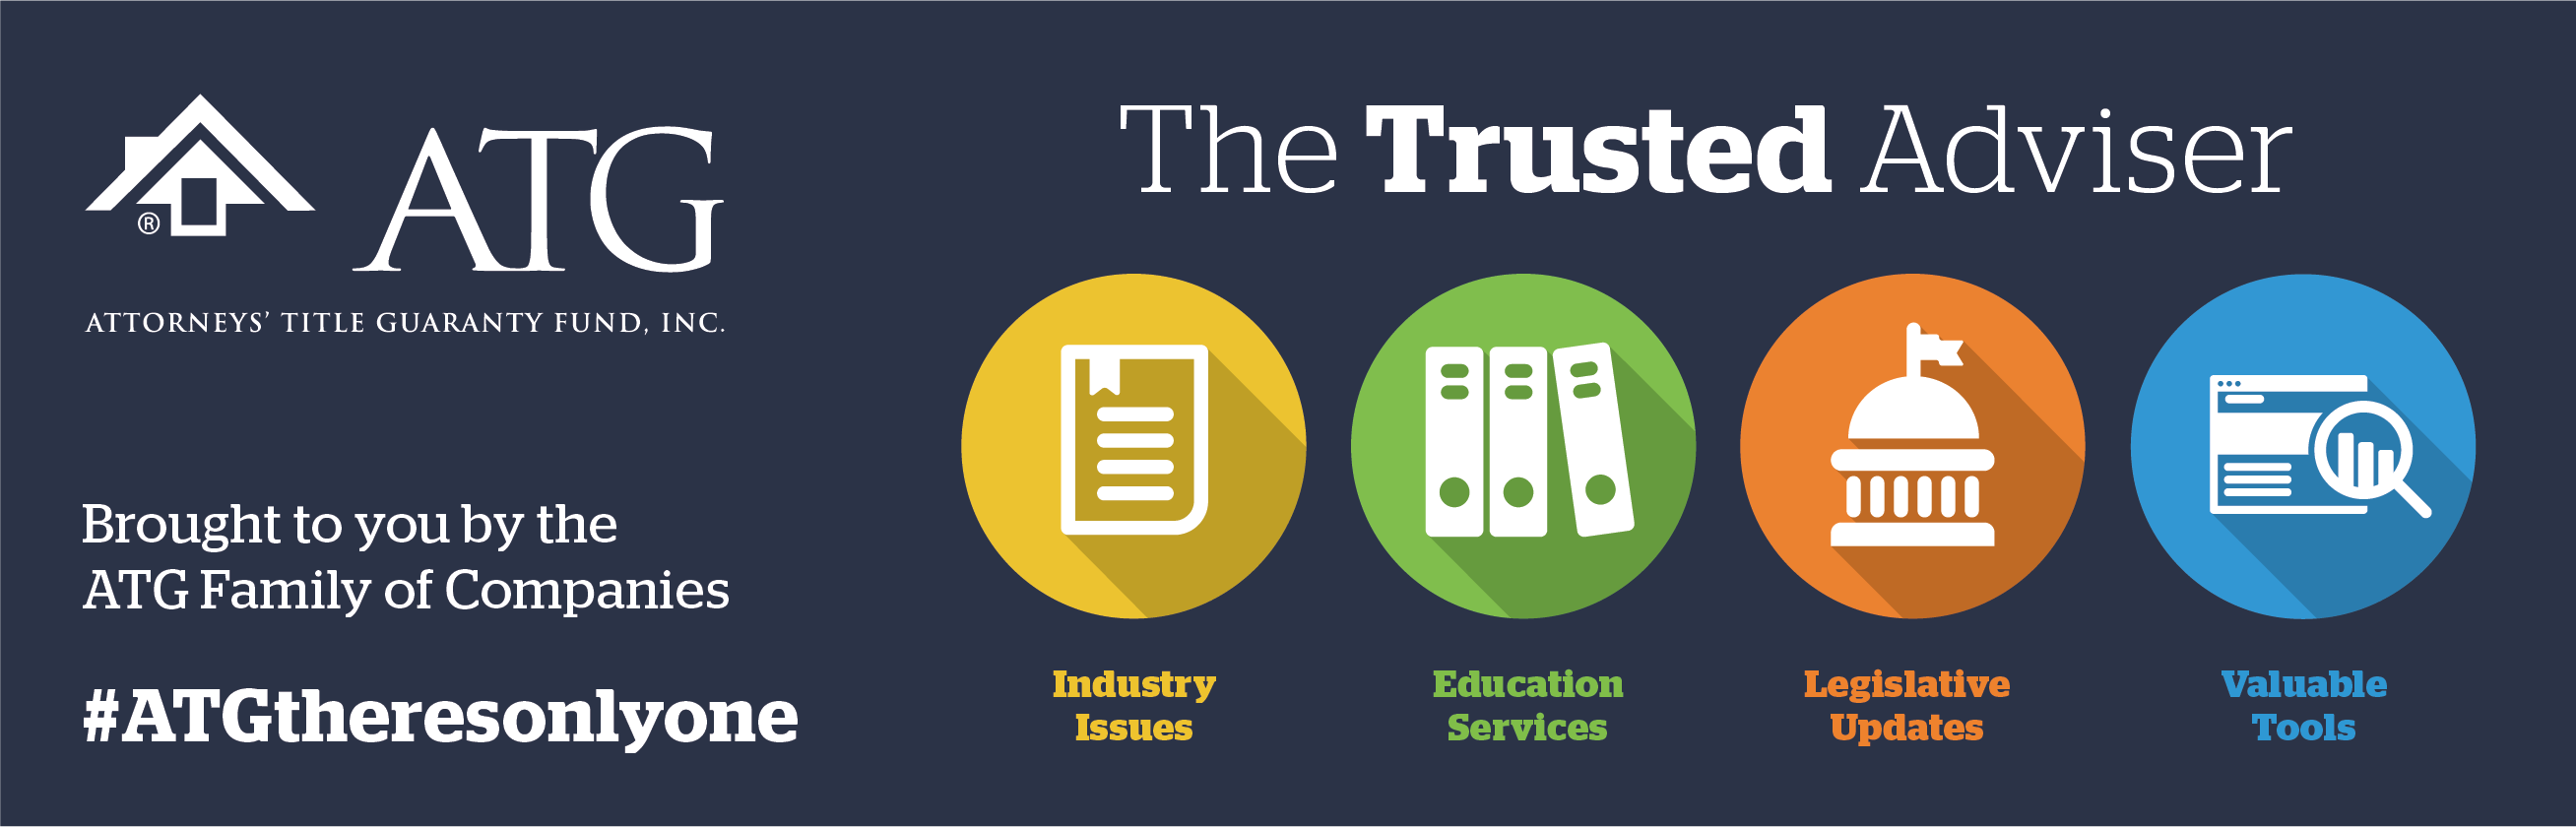 The ATG Trusted Adviser